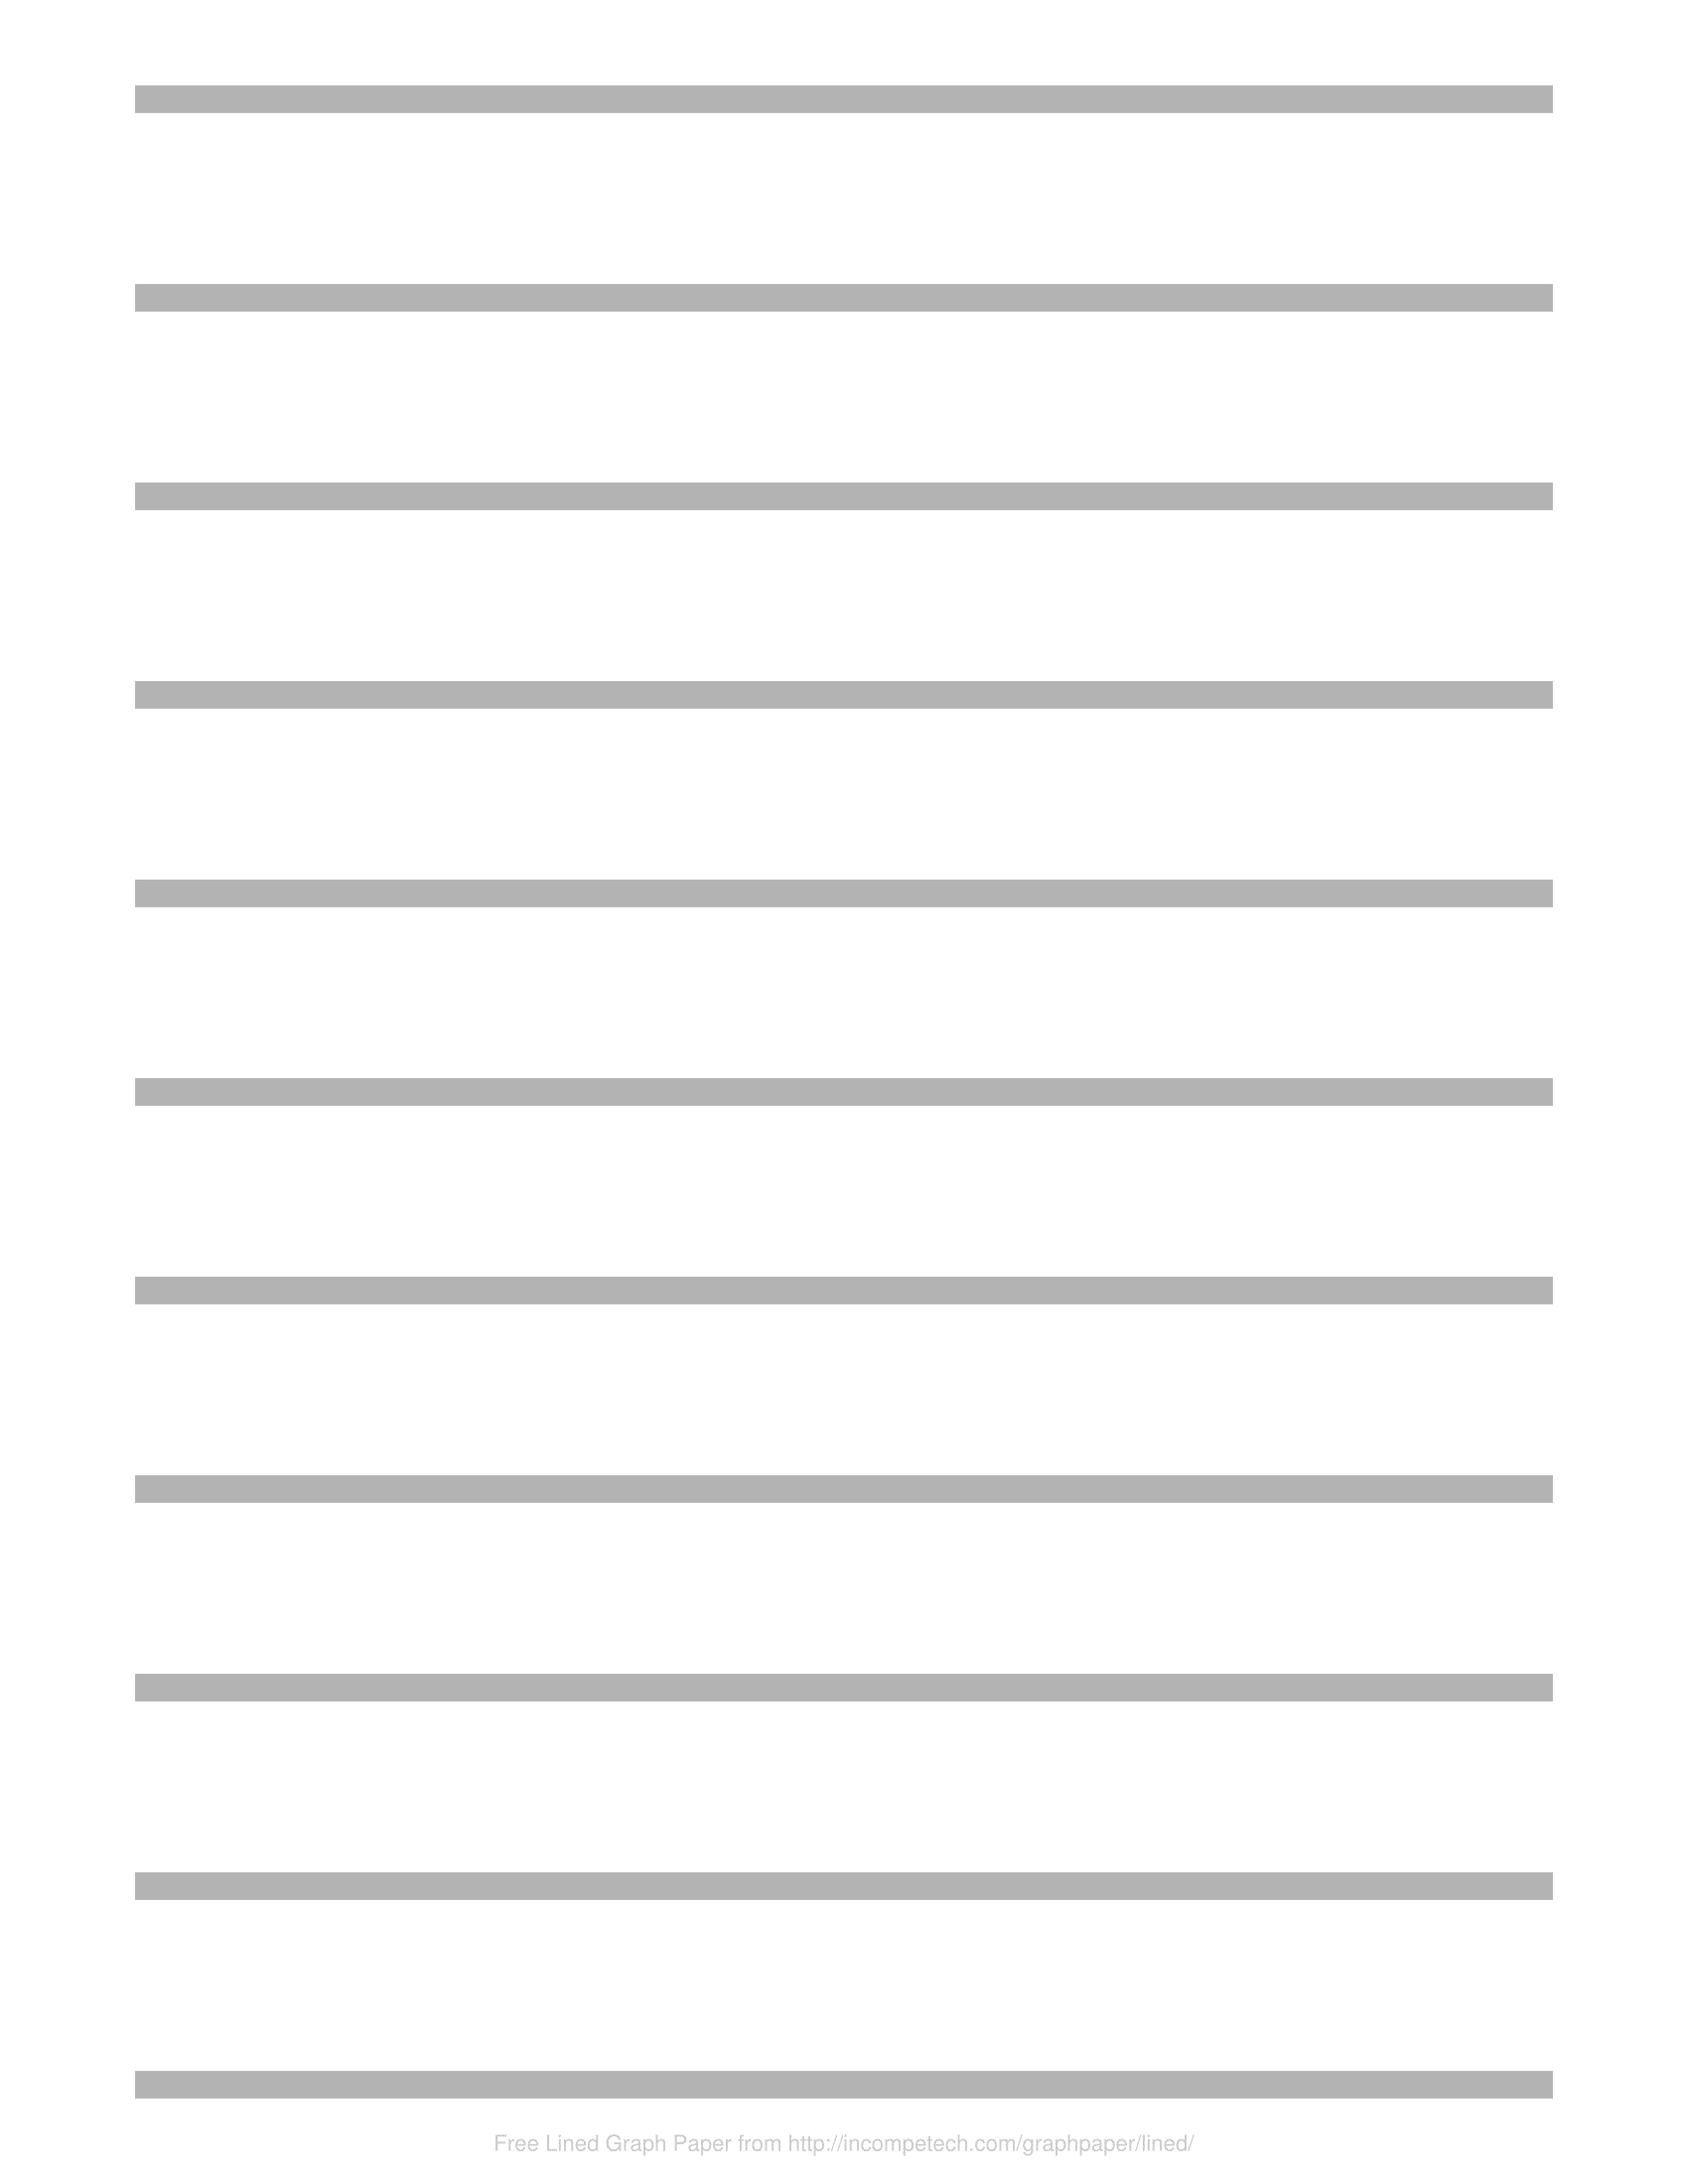 Lined Paper Png, png collections at sccpre.cat.